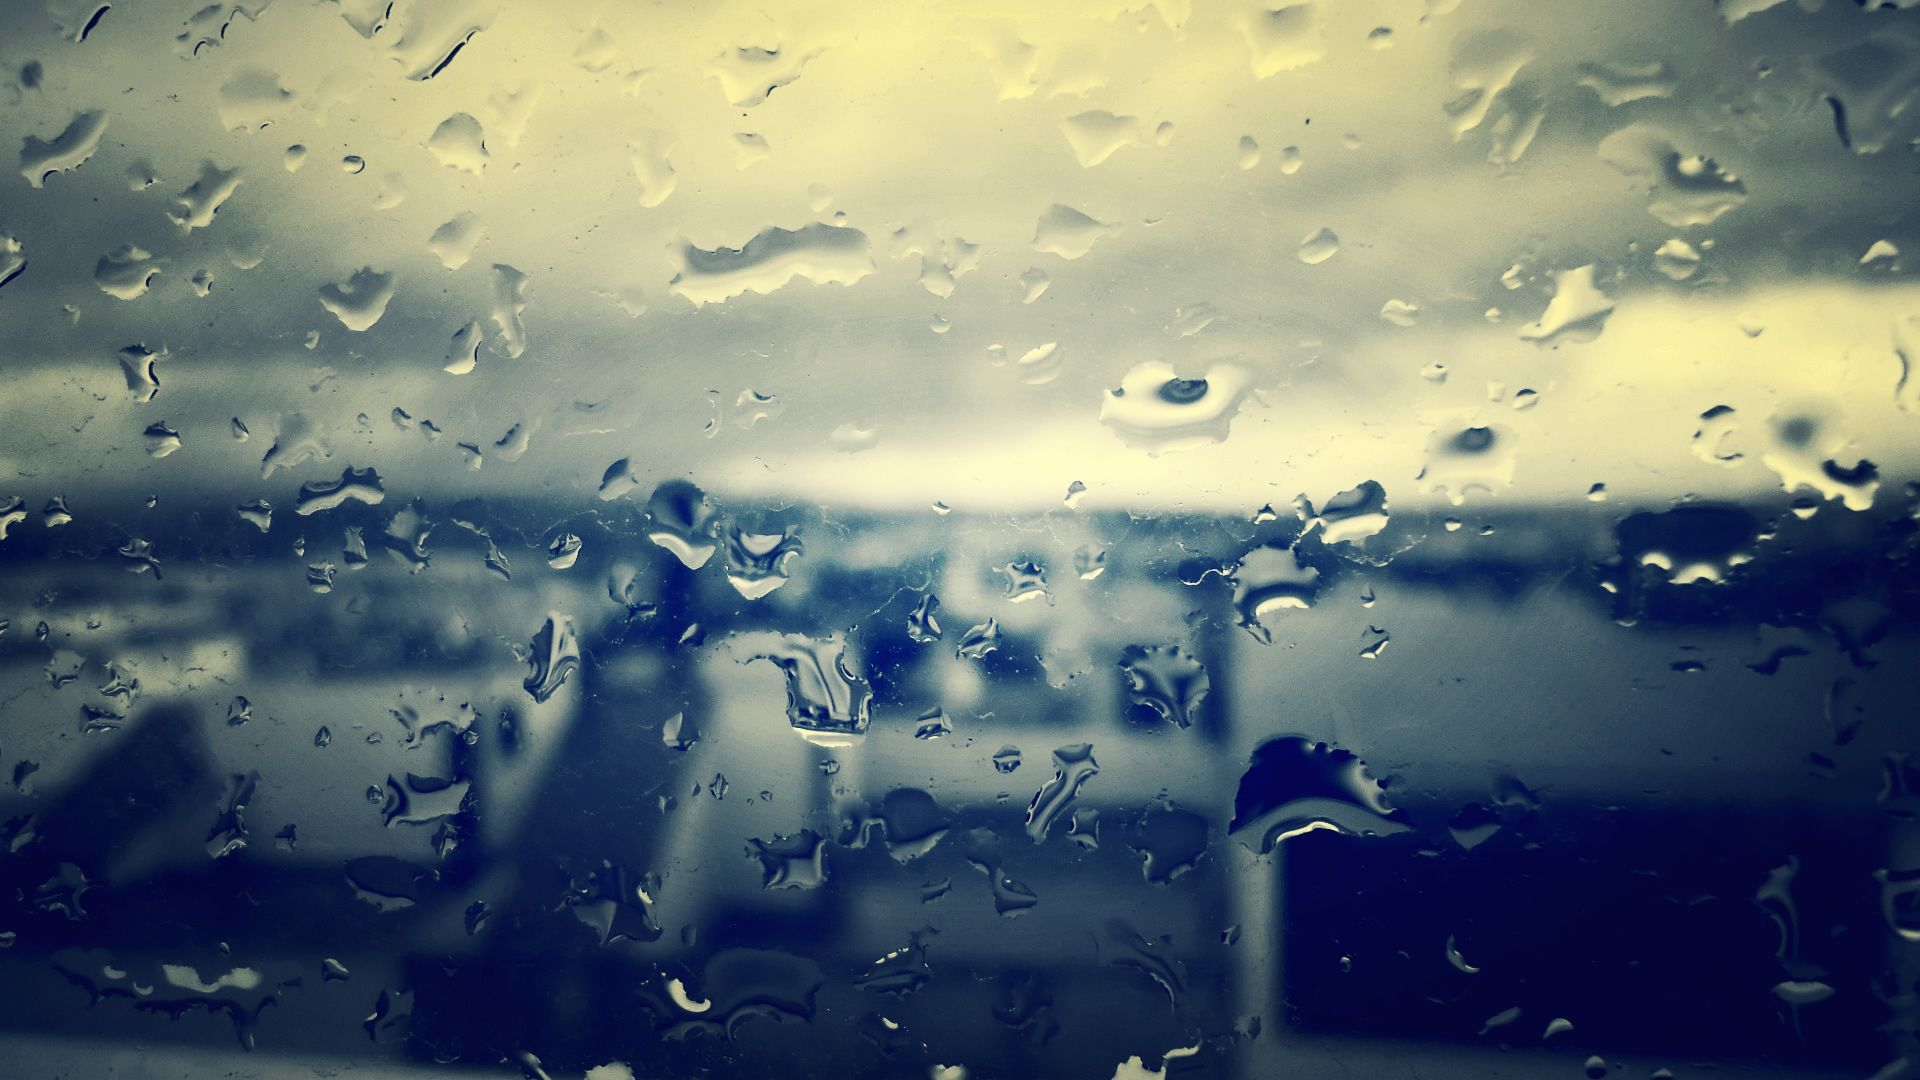 rainy day 1080p background 12 1920 1080 pixel (With images